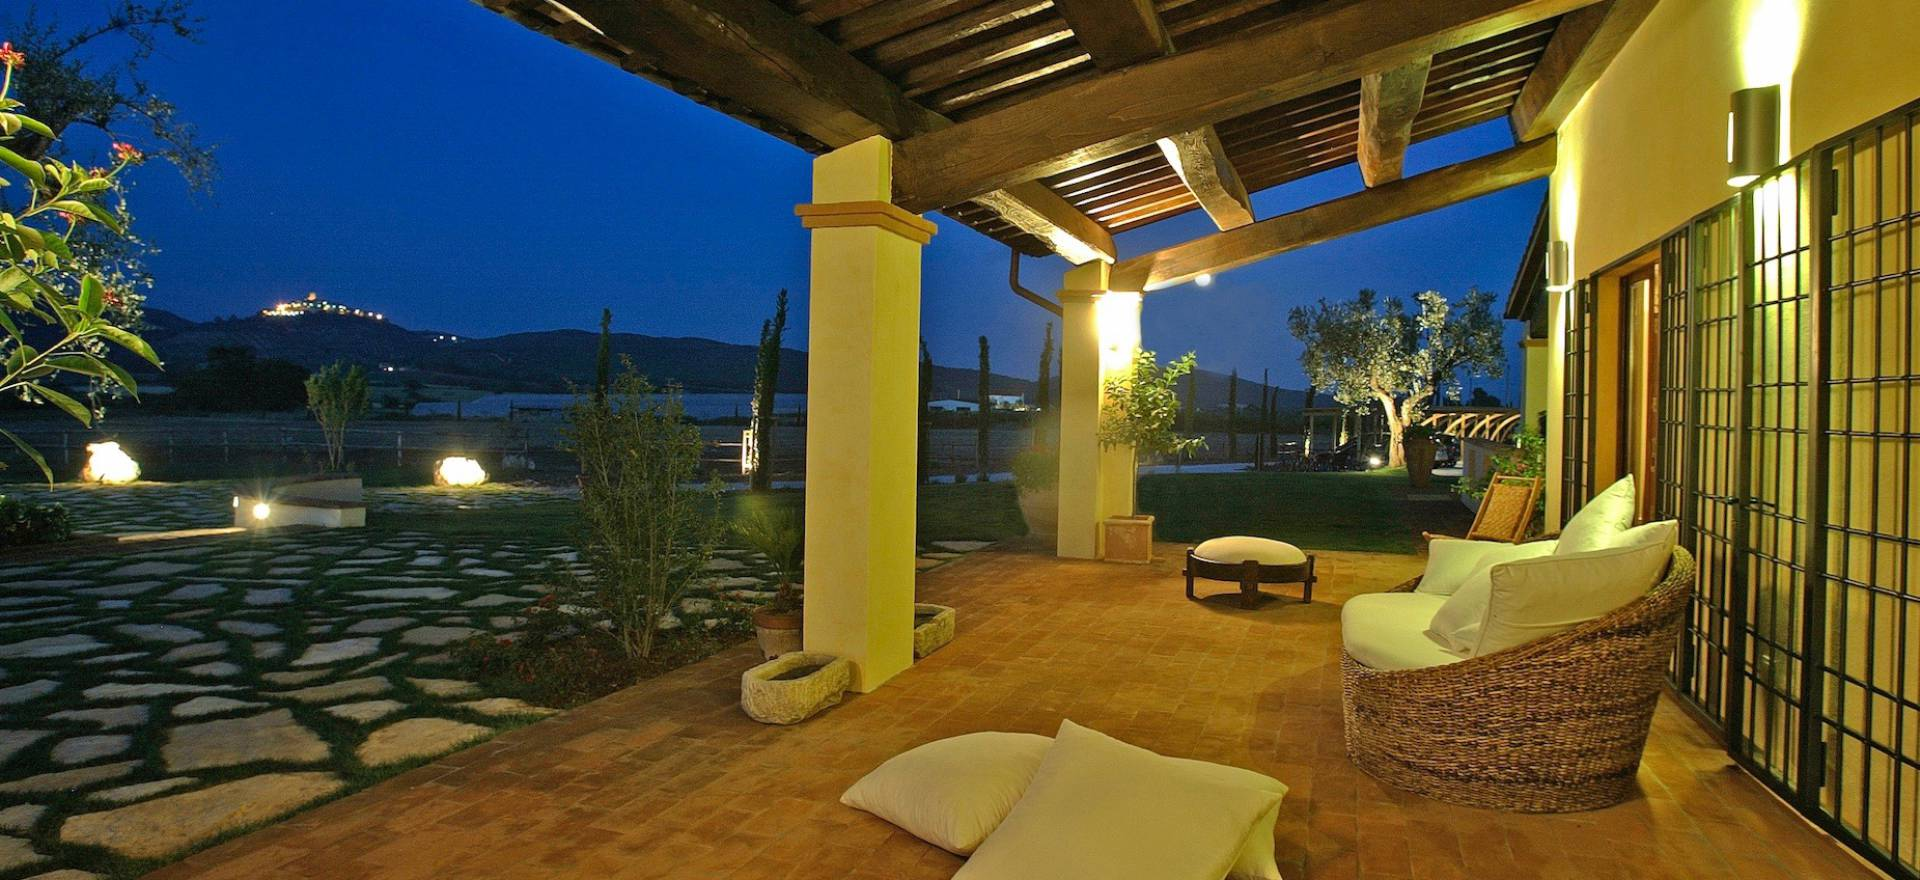 Agriturismo Tuscany Romantic agriturismo Tuscany in the hills near the sea